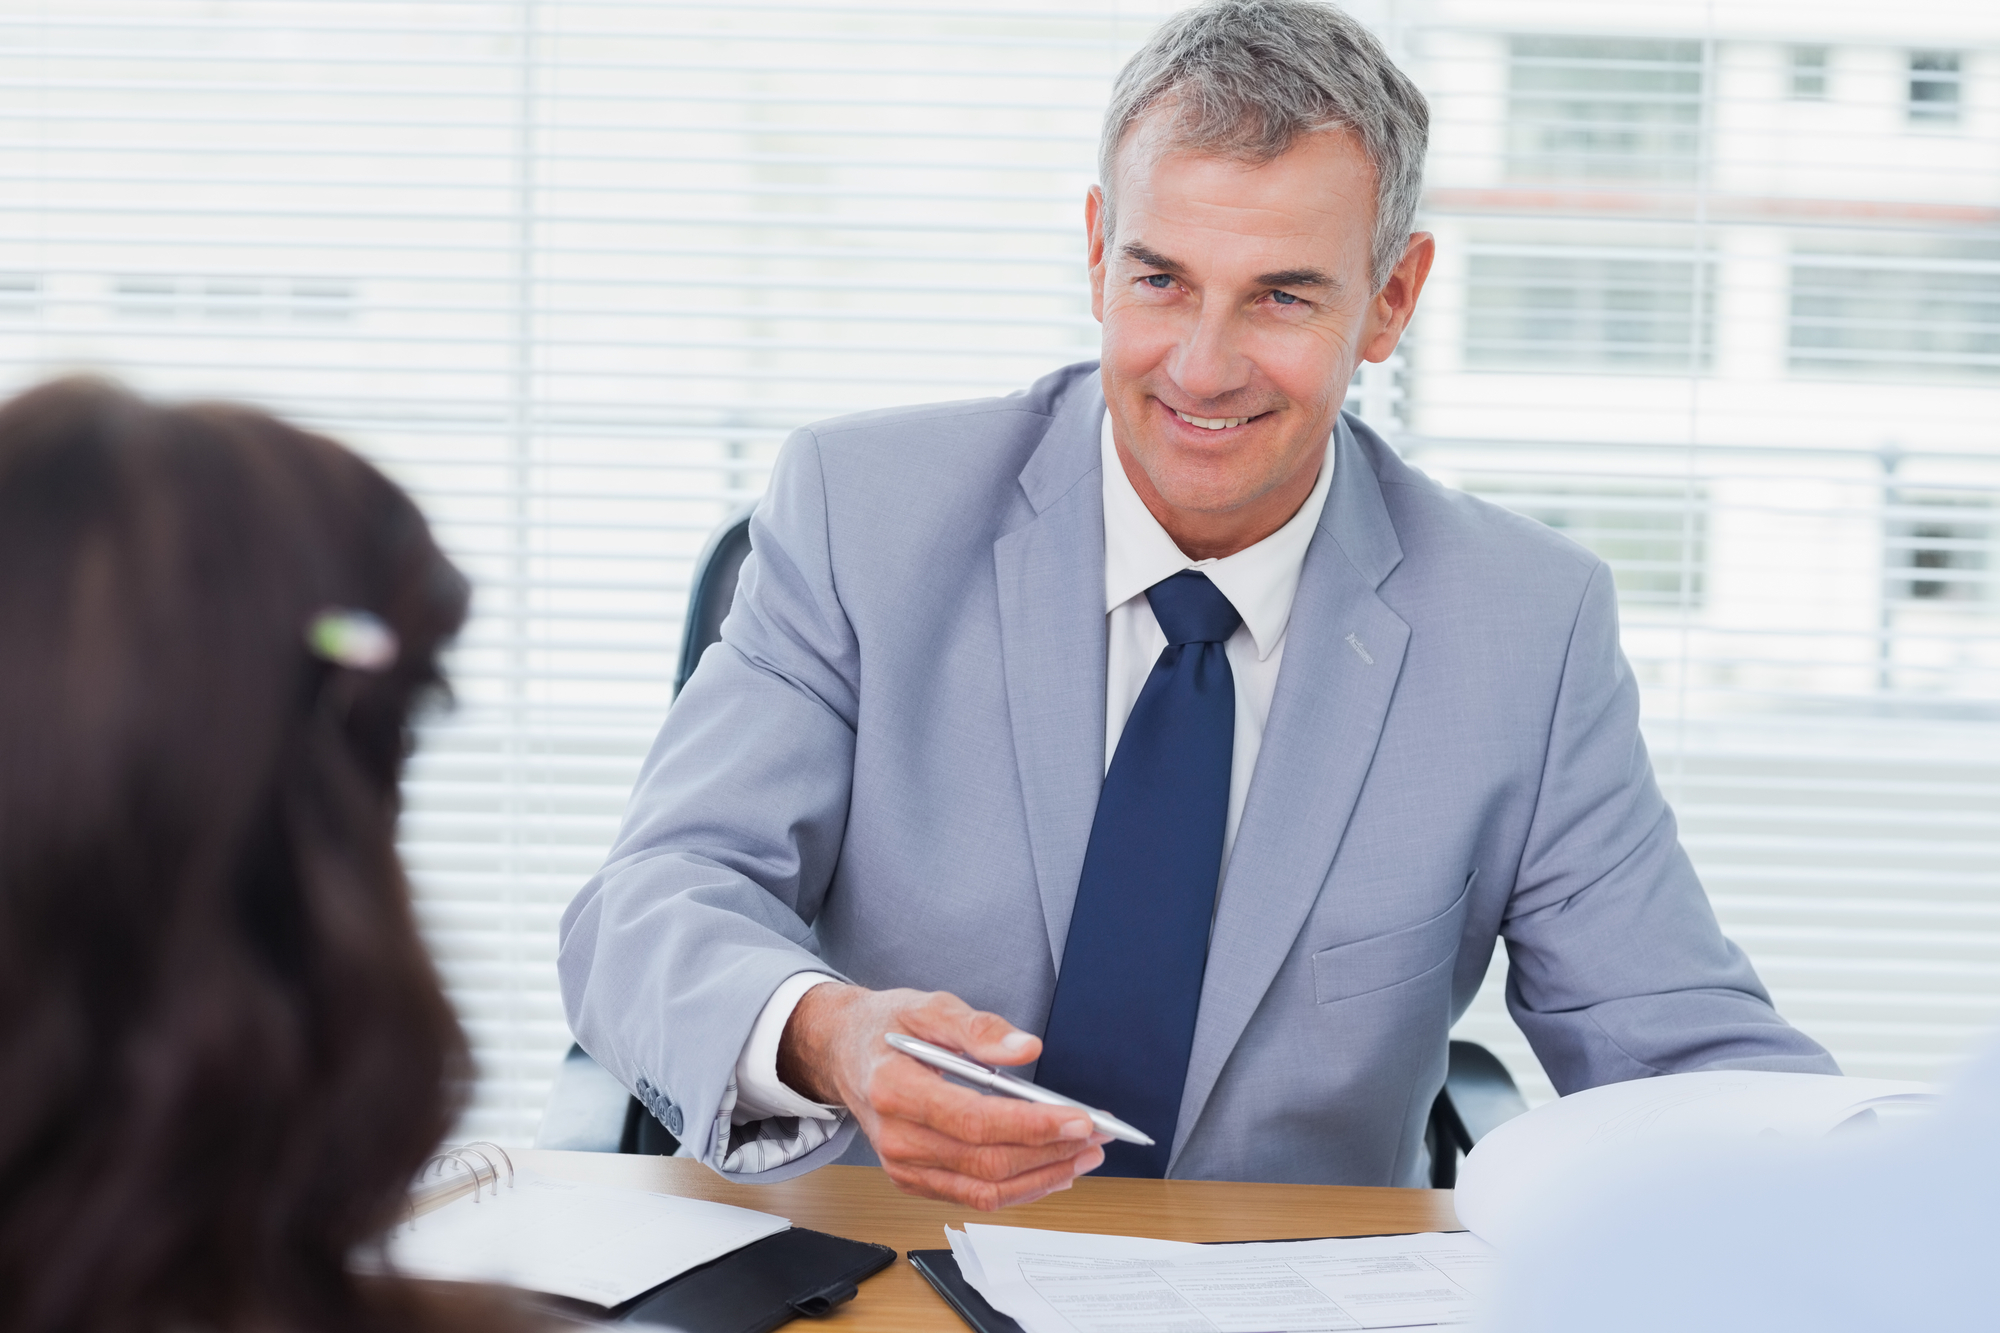 Smiling real estate agent completing contract with couple